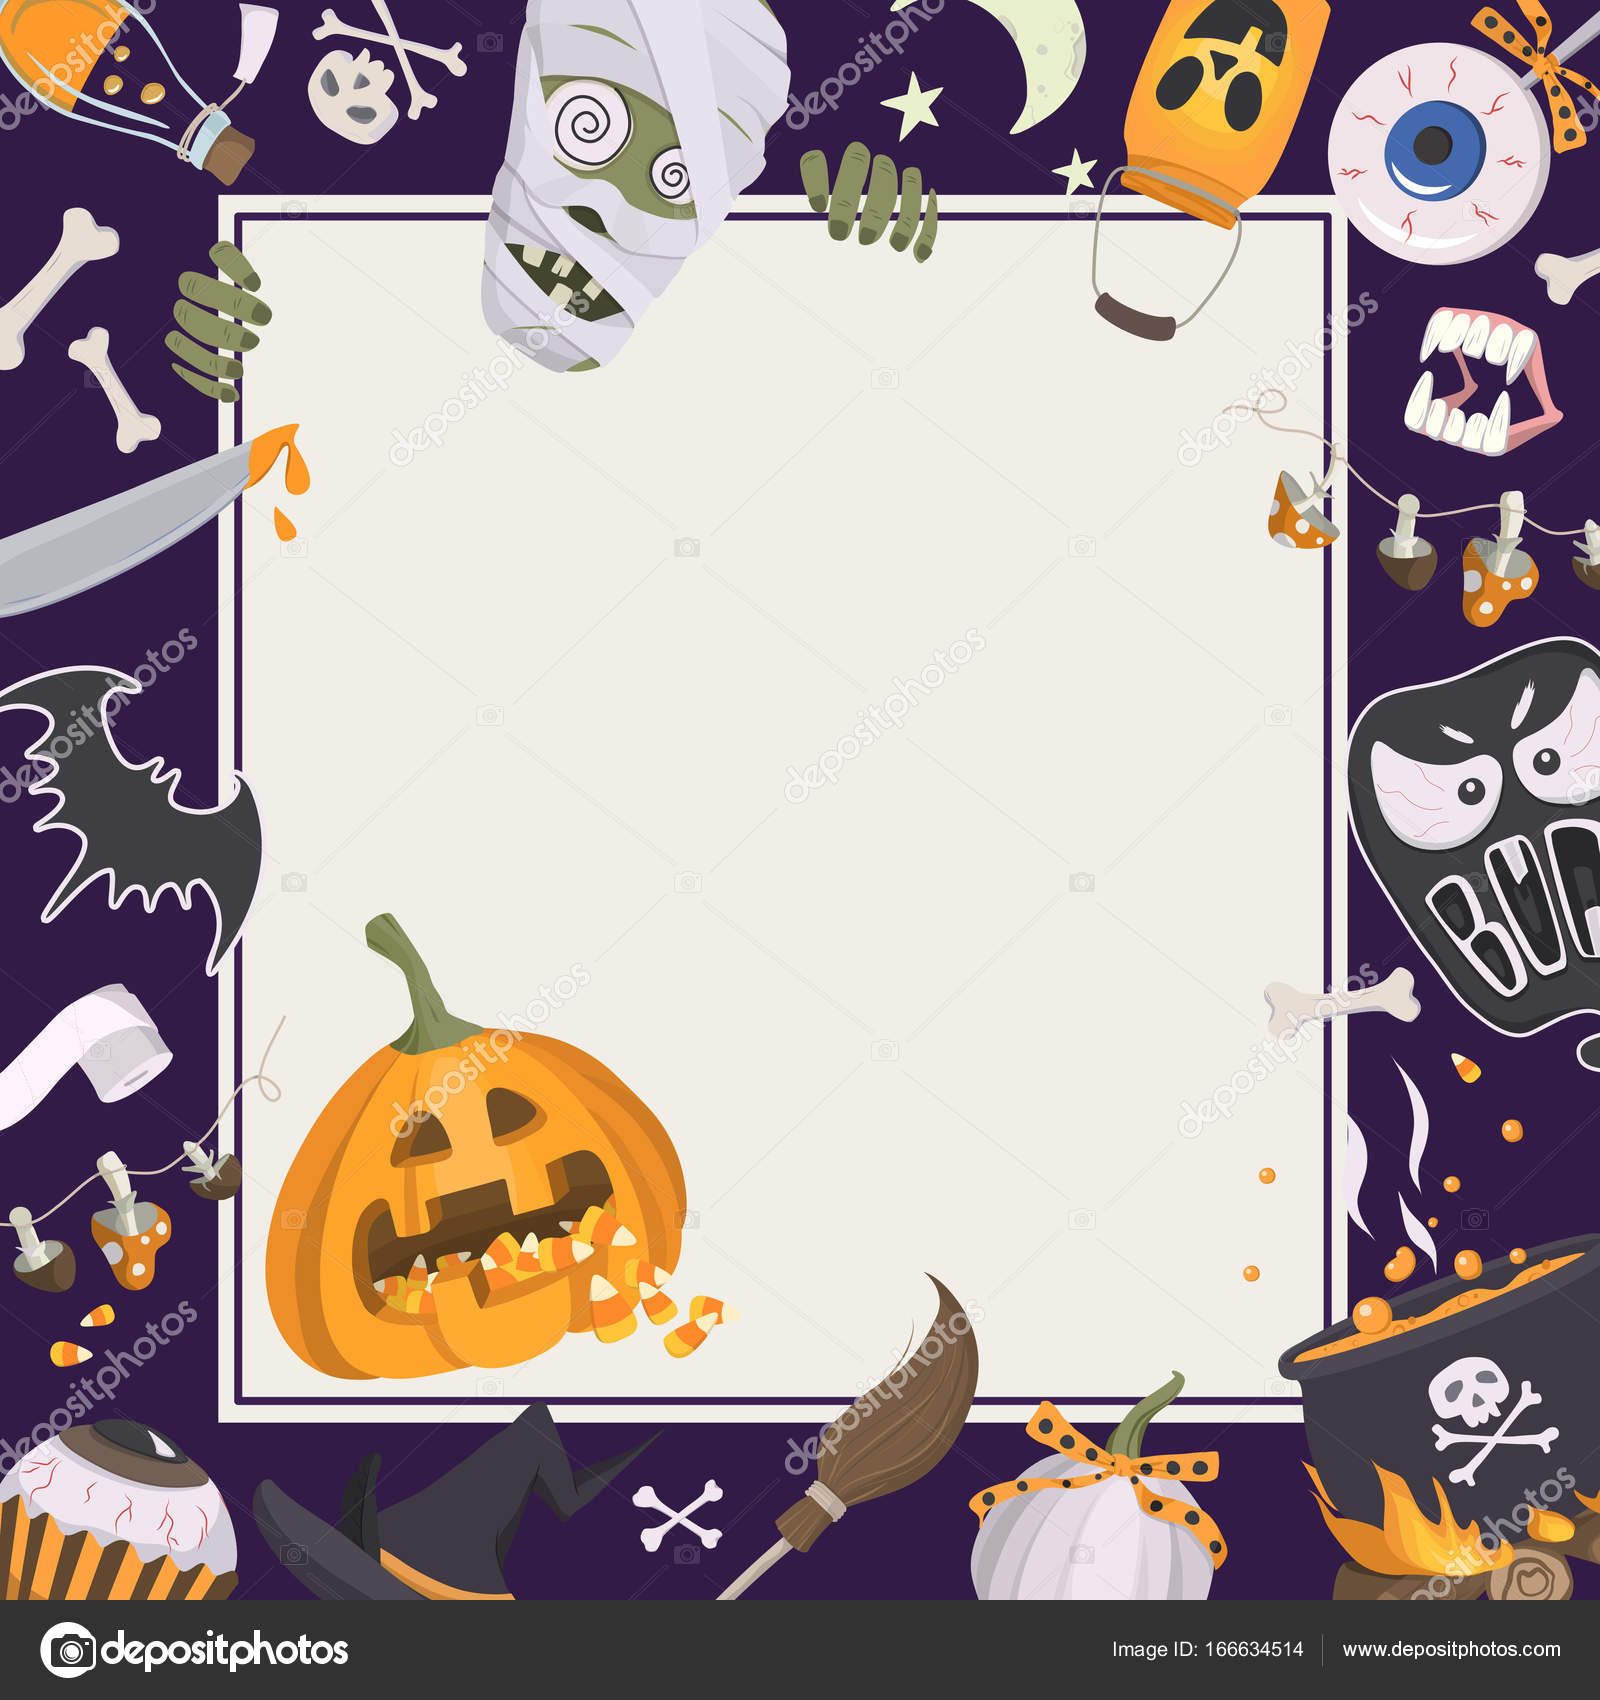 2019 year look- Halloween Happy frame pictures